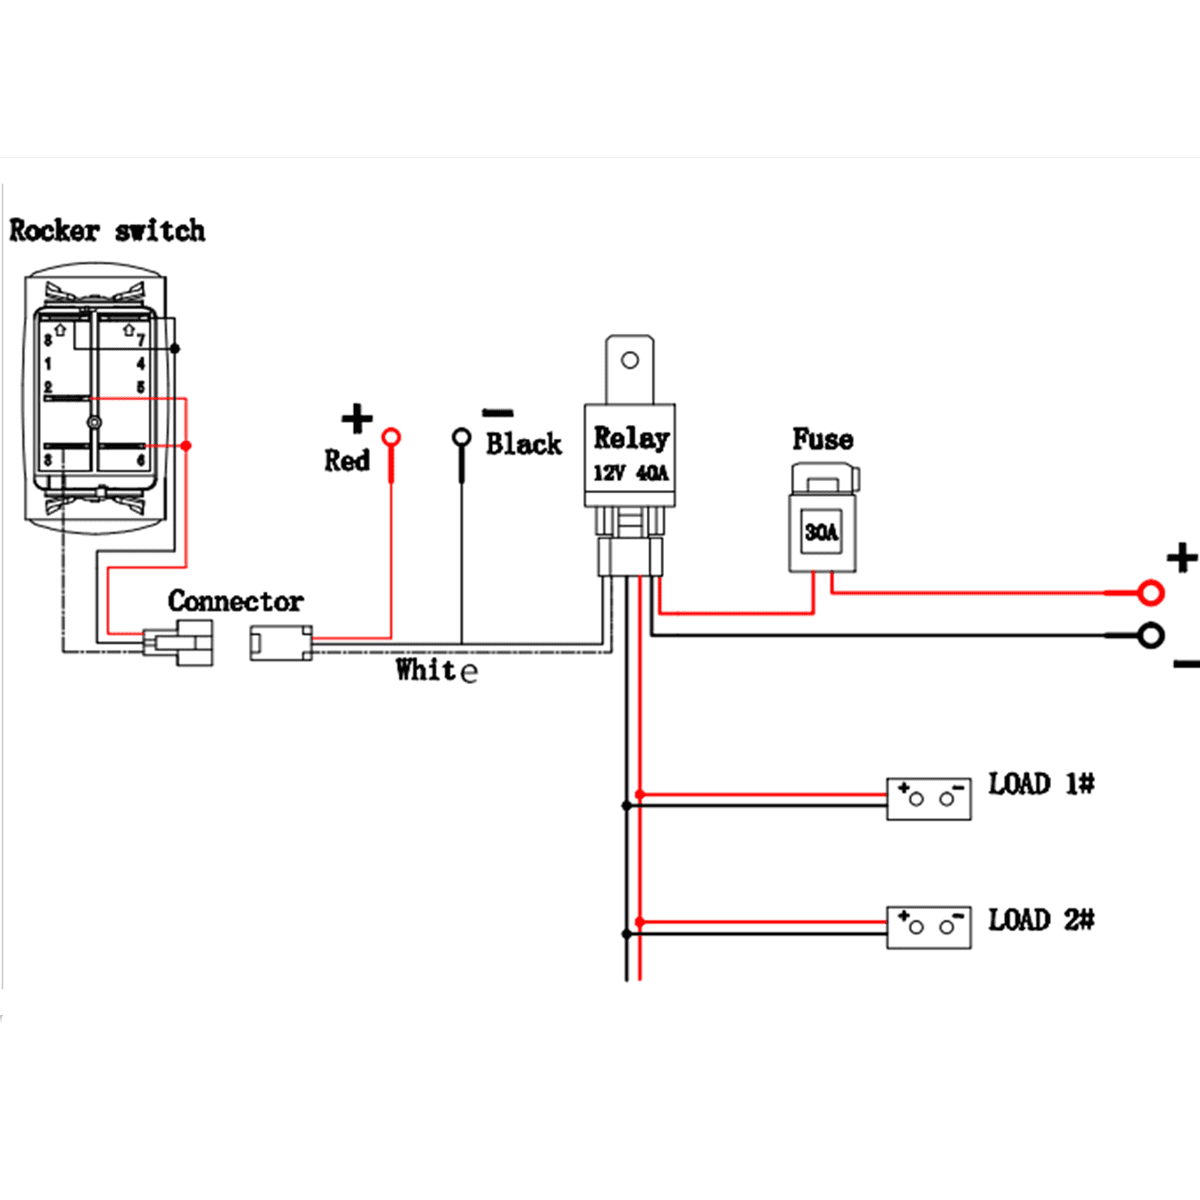 Relay Wiring With Switch And Harness on Led Light Bar Rocker Switch Wiring Diagram